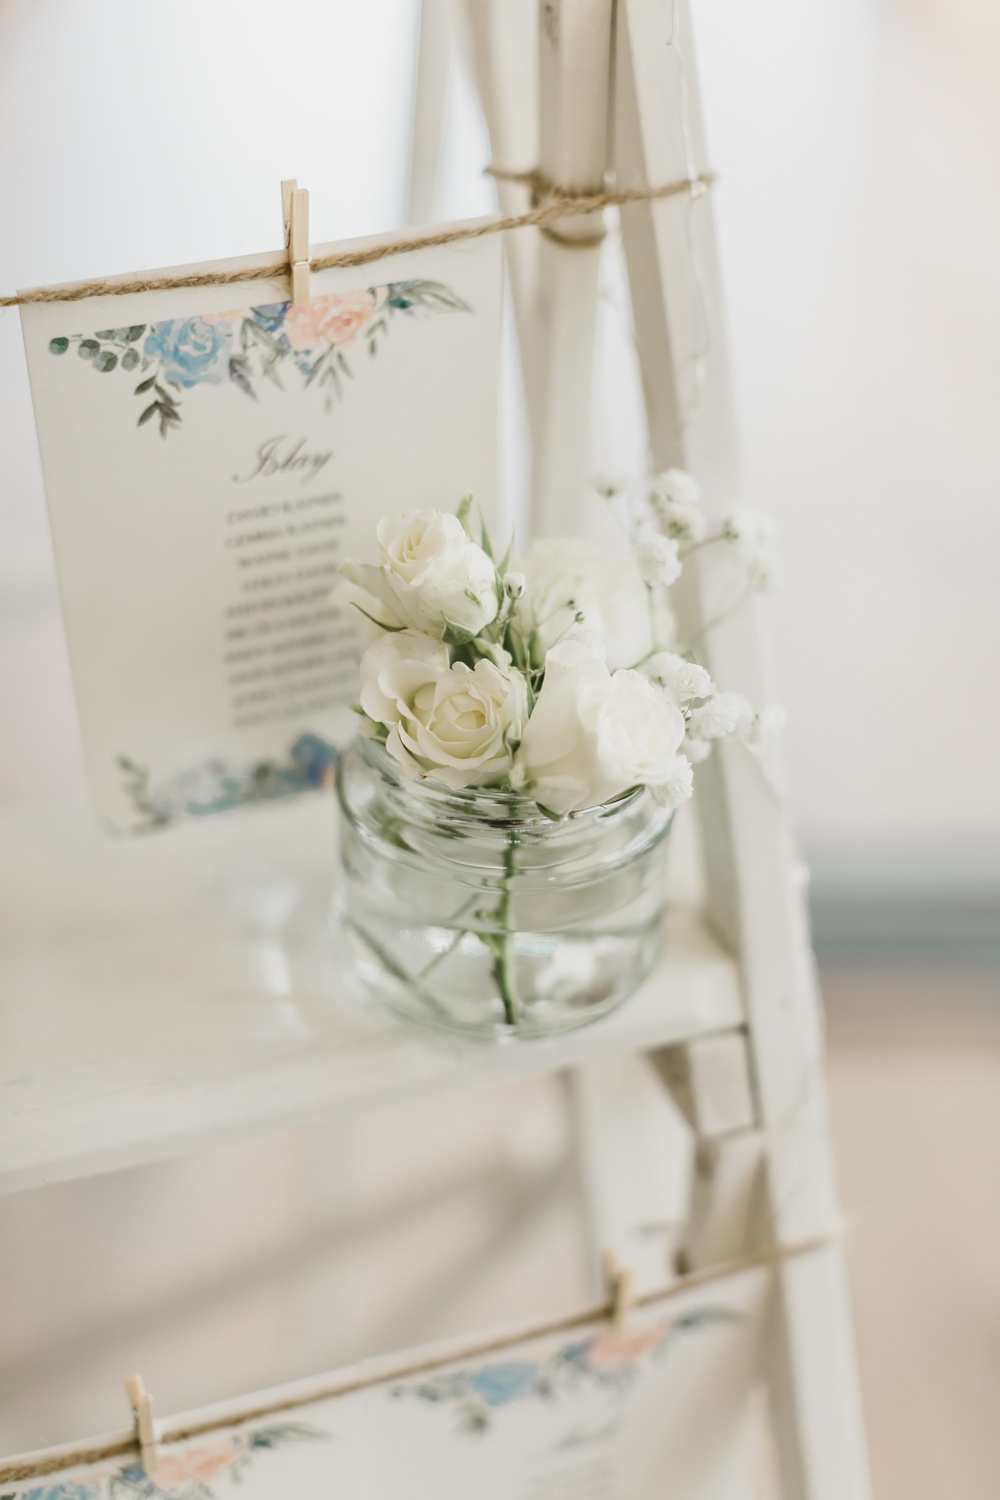 White Wooden Ladder Seating Plan Table Chart Flowers GG's Yard Wedding Amy Lou Photography